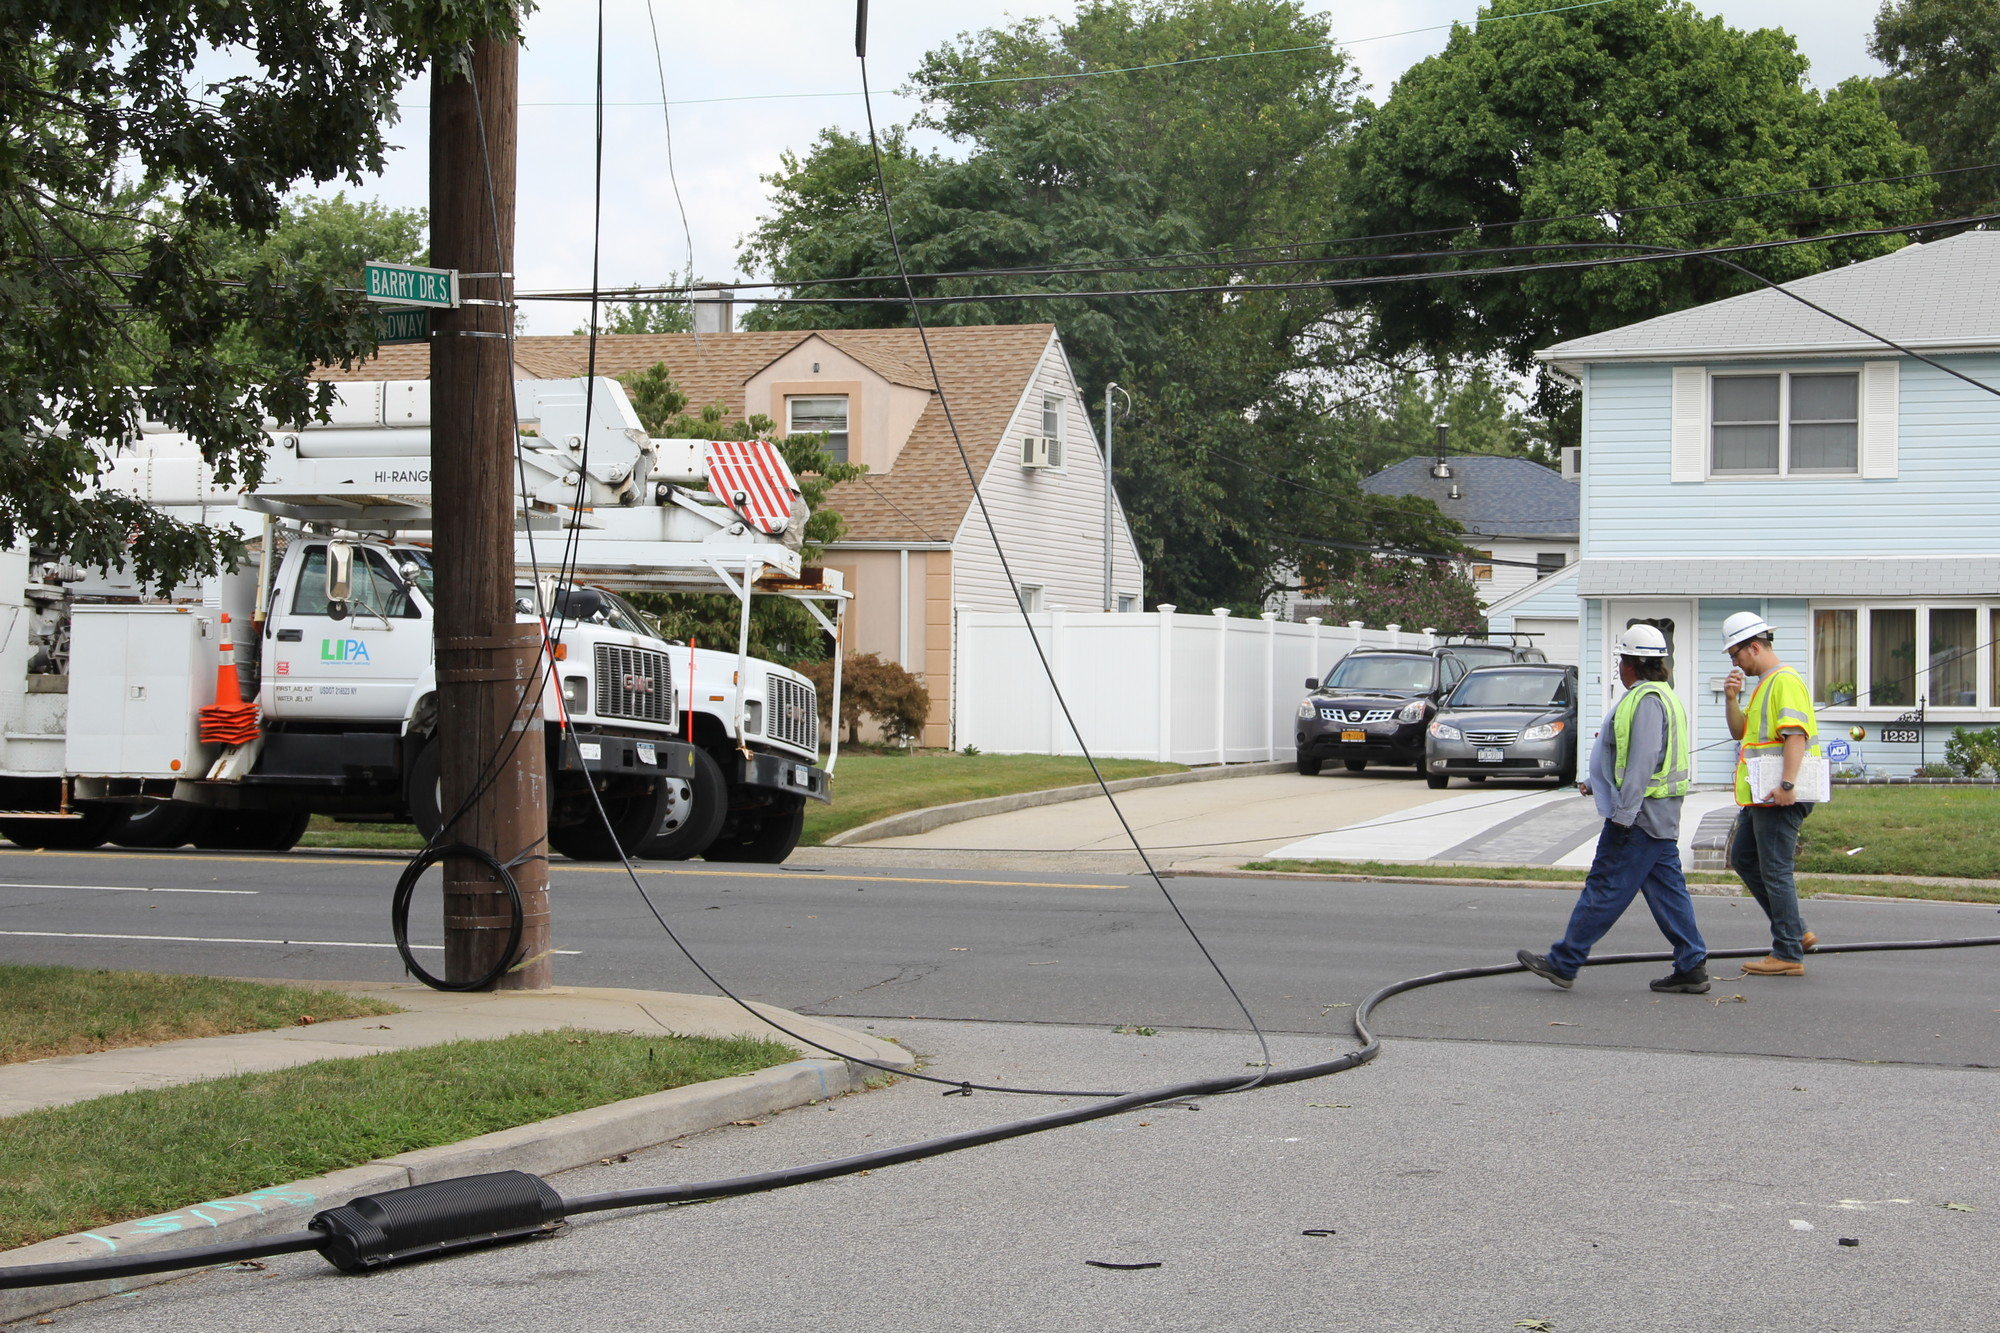 Wires were ripped down throughout southern Elmont and North Valley Stream, including at the corner of Dutch Broadway and Barry Drive.